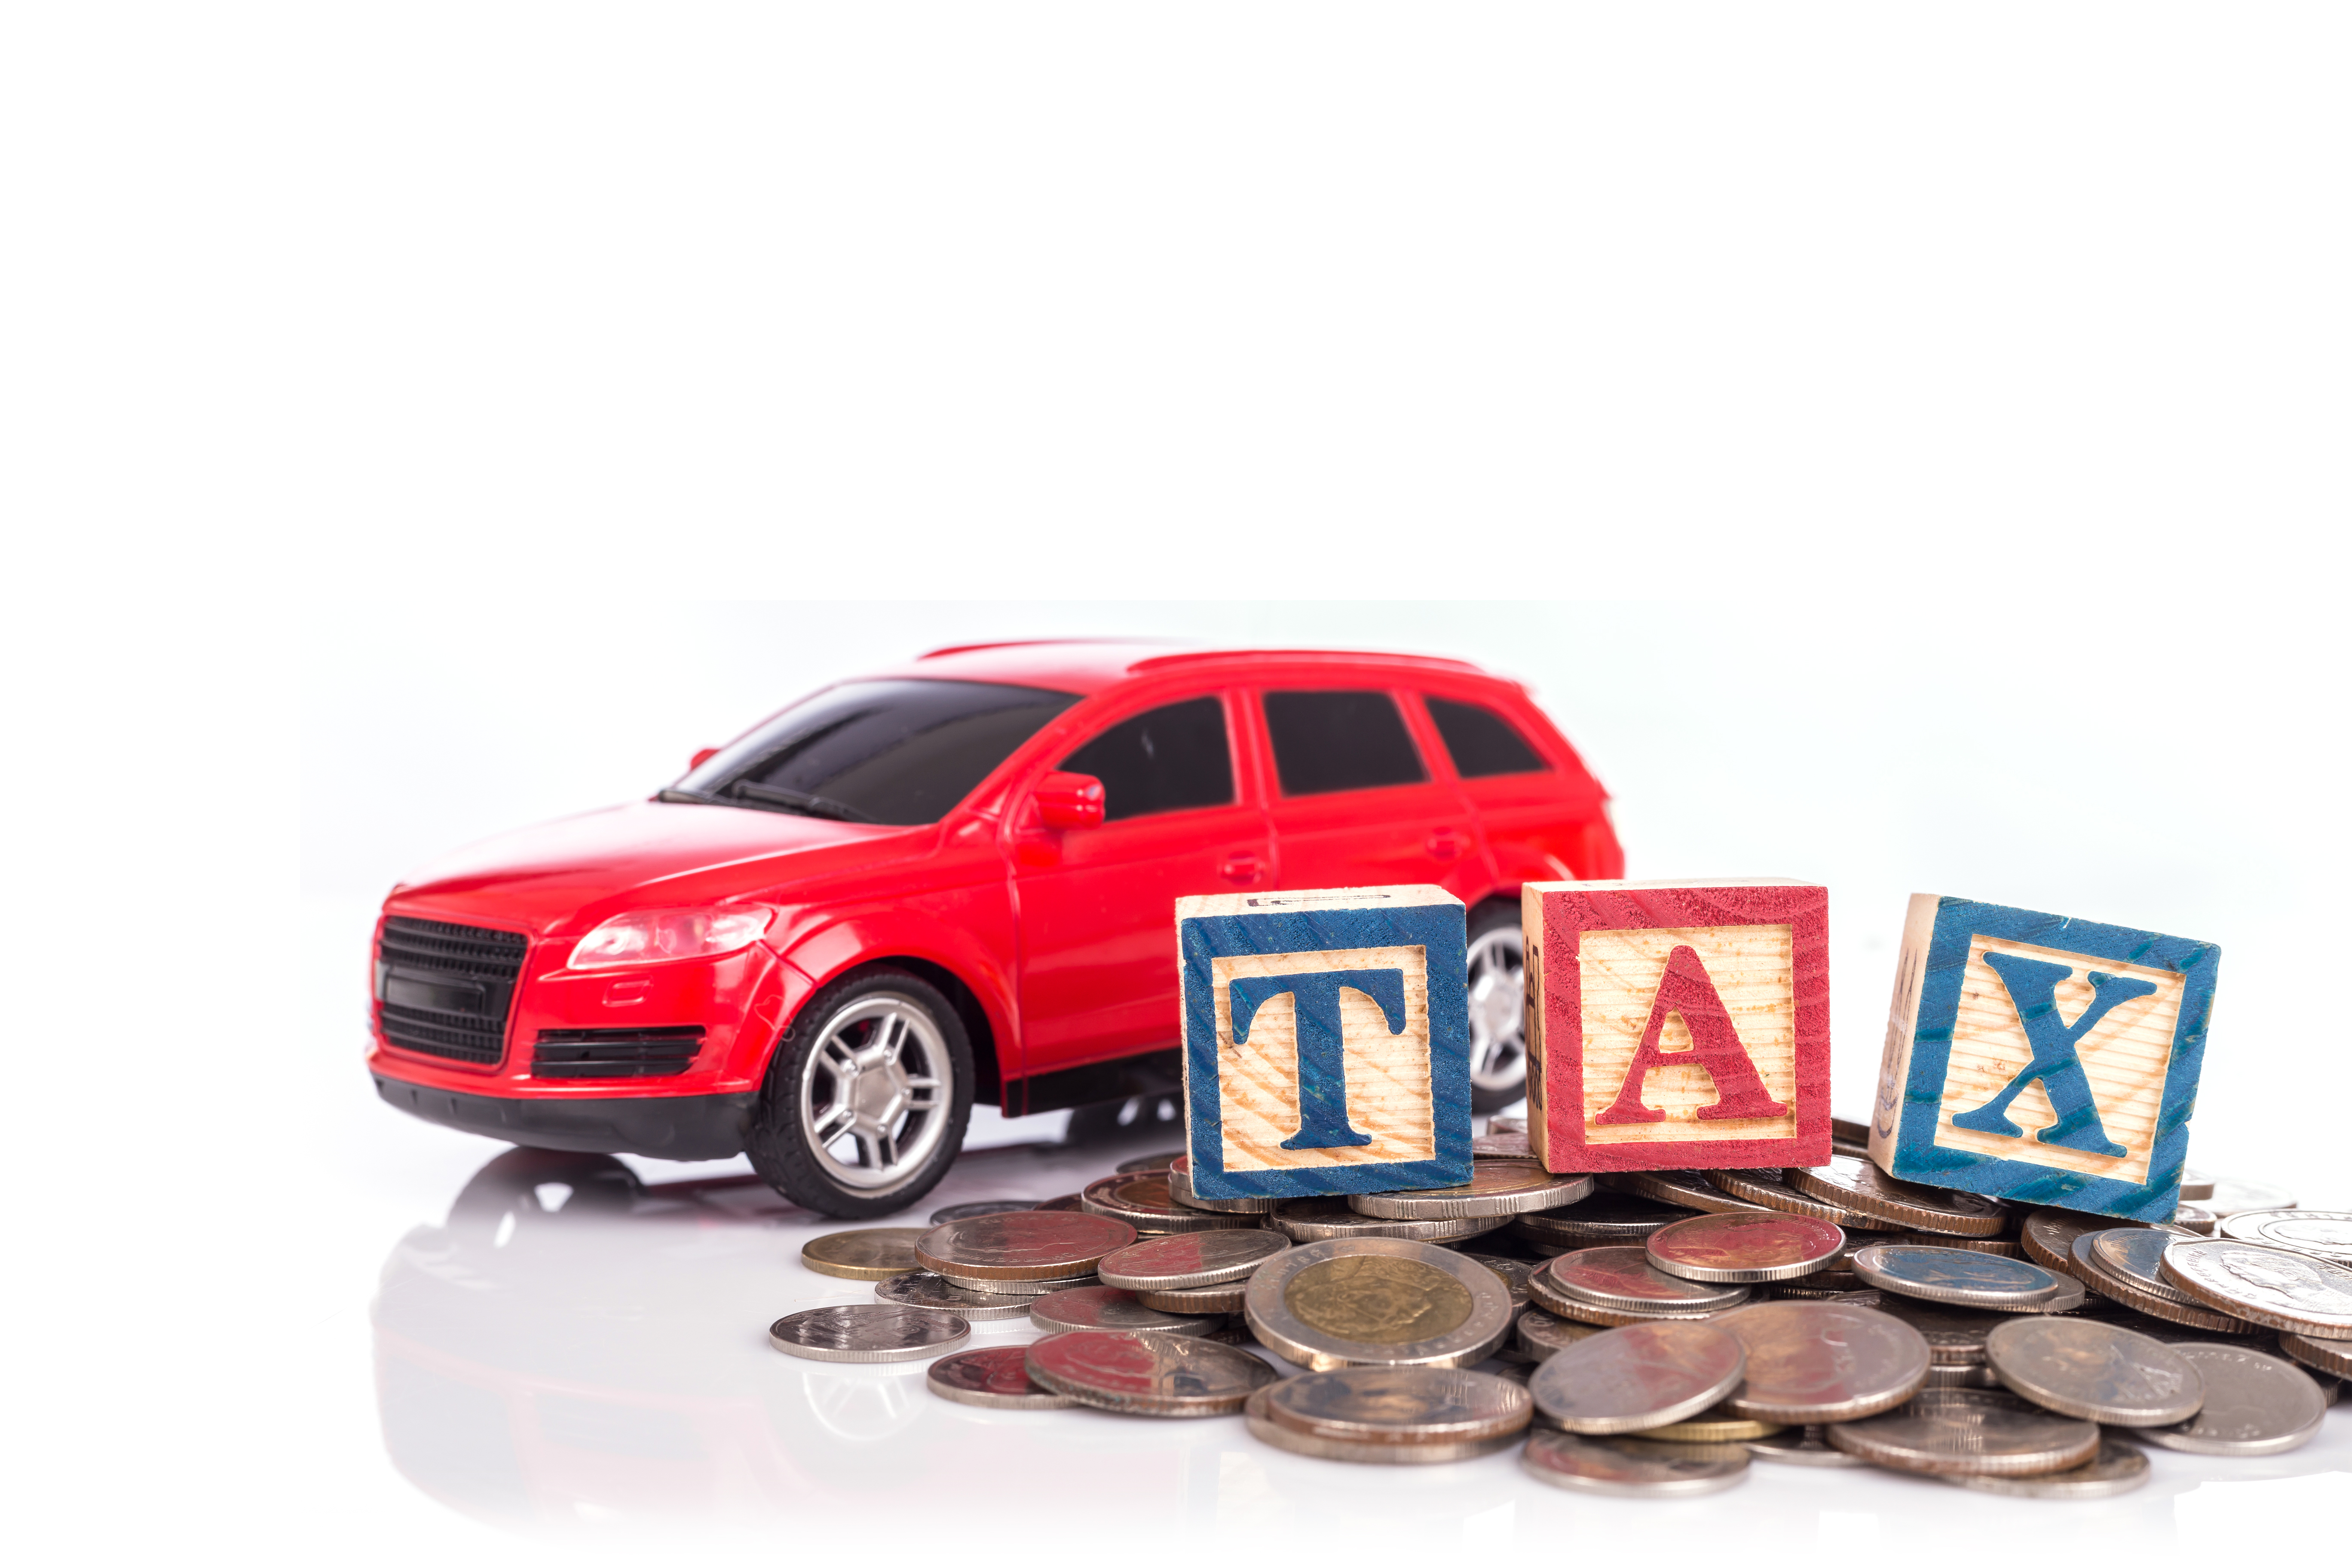 Guess what? Car tax is rising. Again. (Image: Shutterstock)